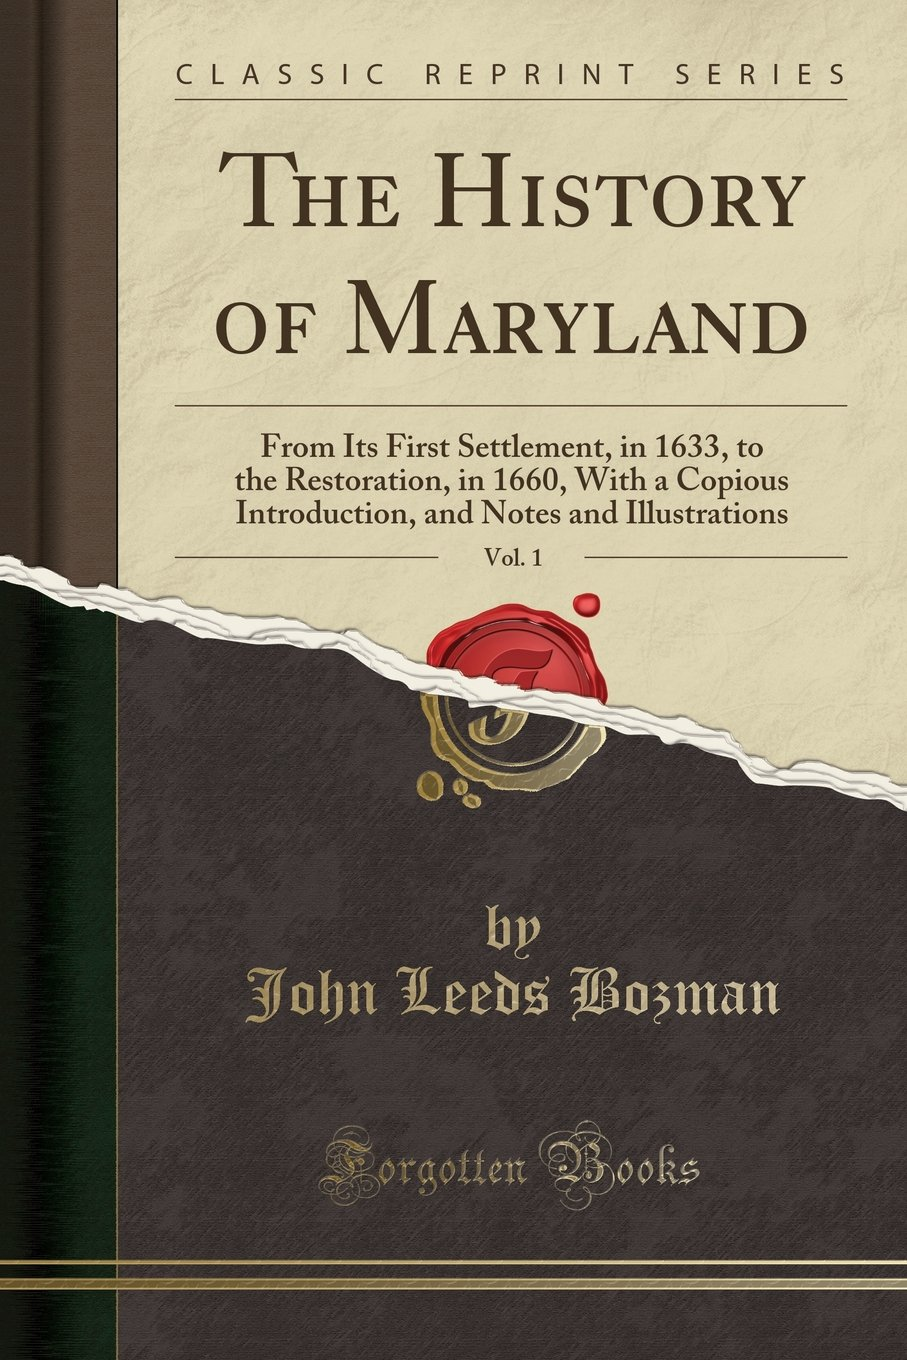 Download The History of Maryland, Vol. 1: From Its First Settlement, in 1633, to the Restoration, in 1660, With a Copious Introduction, and Notes and Illustrations (Classic Reprint) PDF